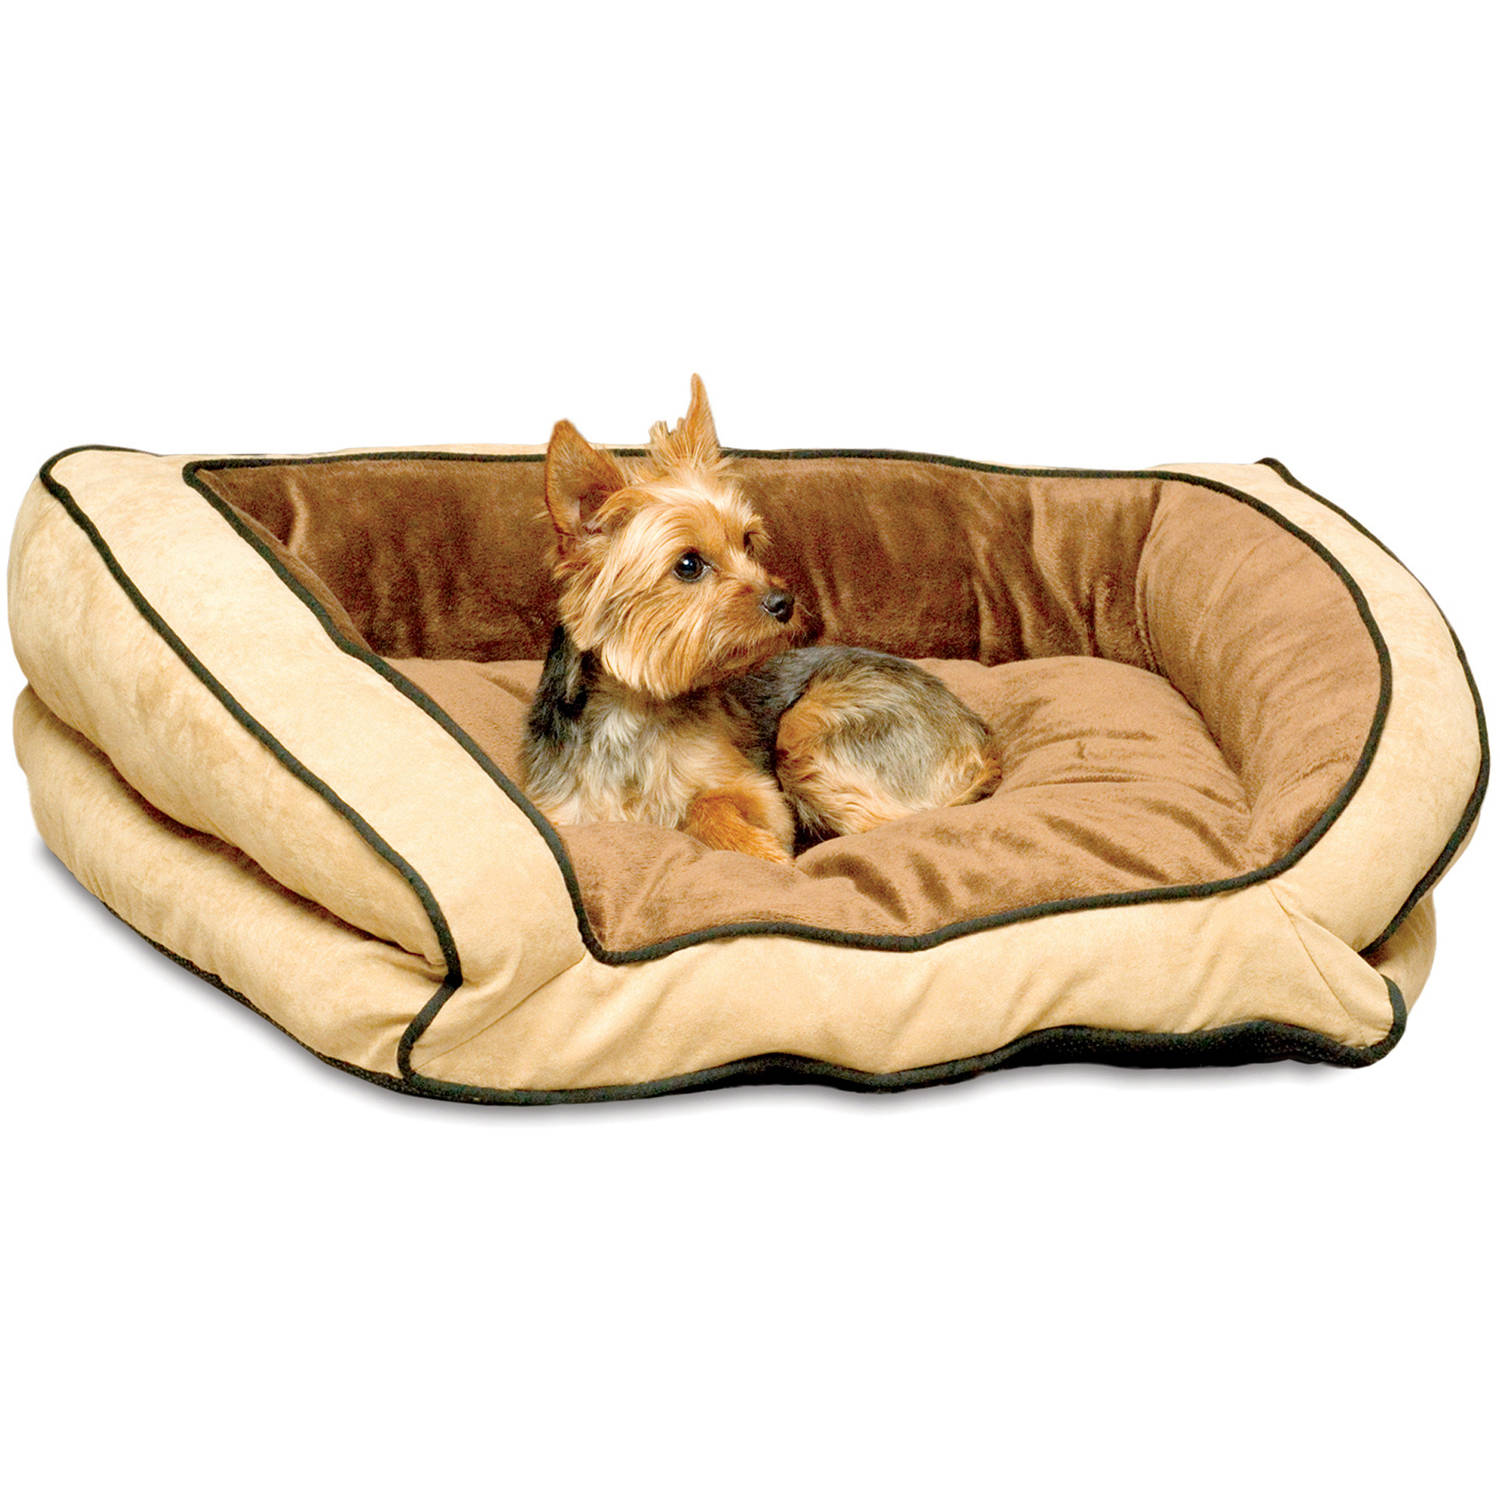 K&H Pet Products Bolster Couch Dog Bed, Large, Mocha/Tan